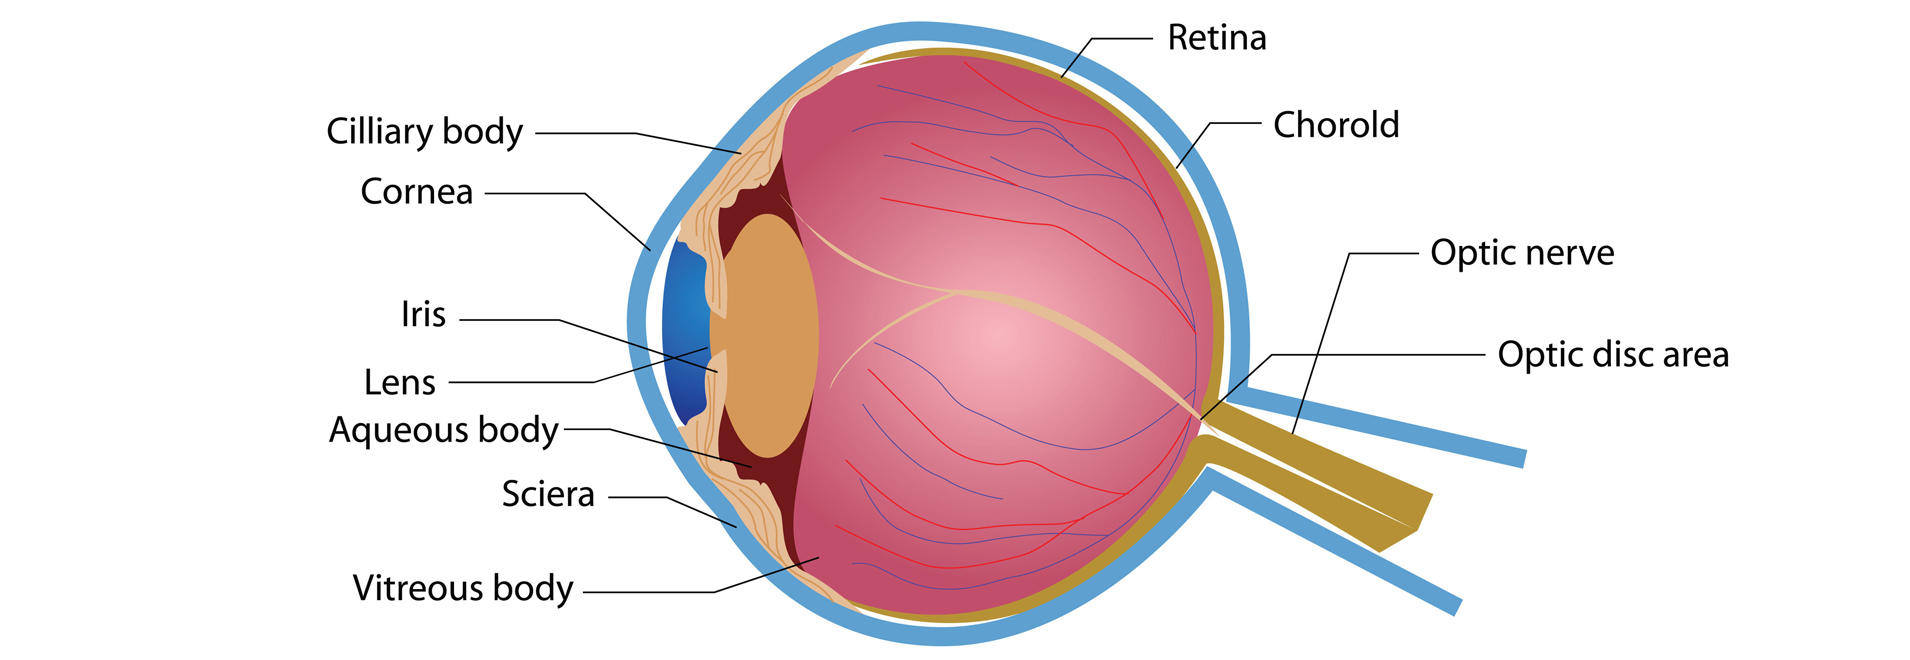 Armenian EyeCare Project » Anatomy of the Eye